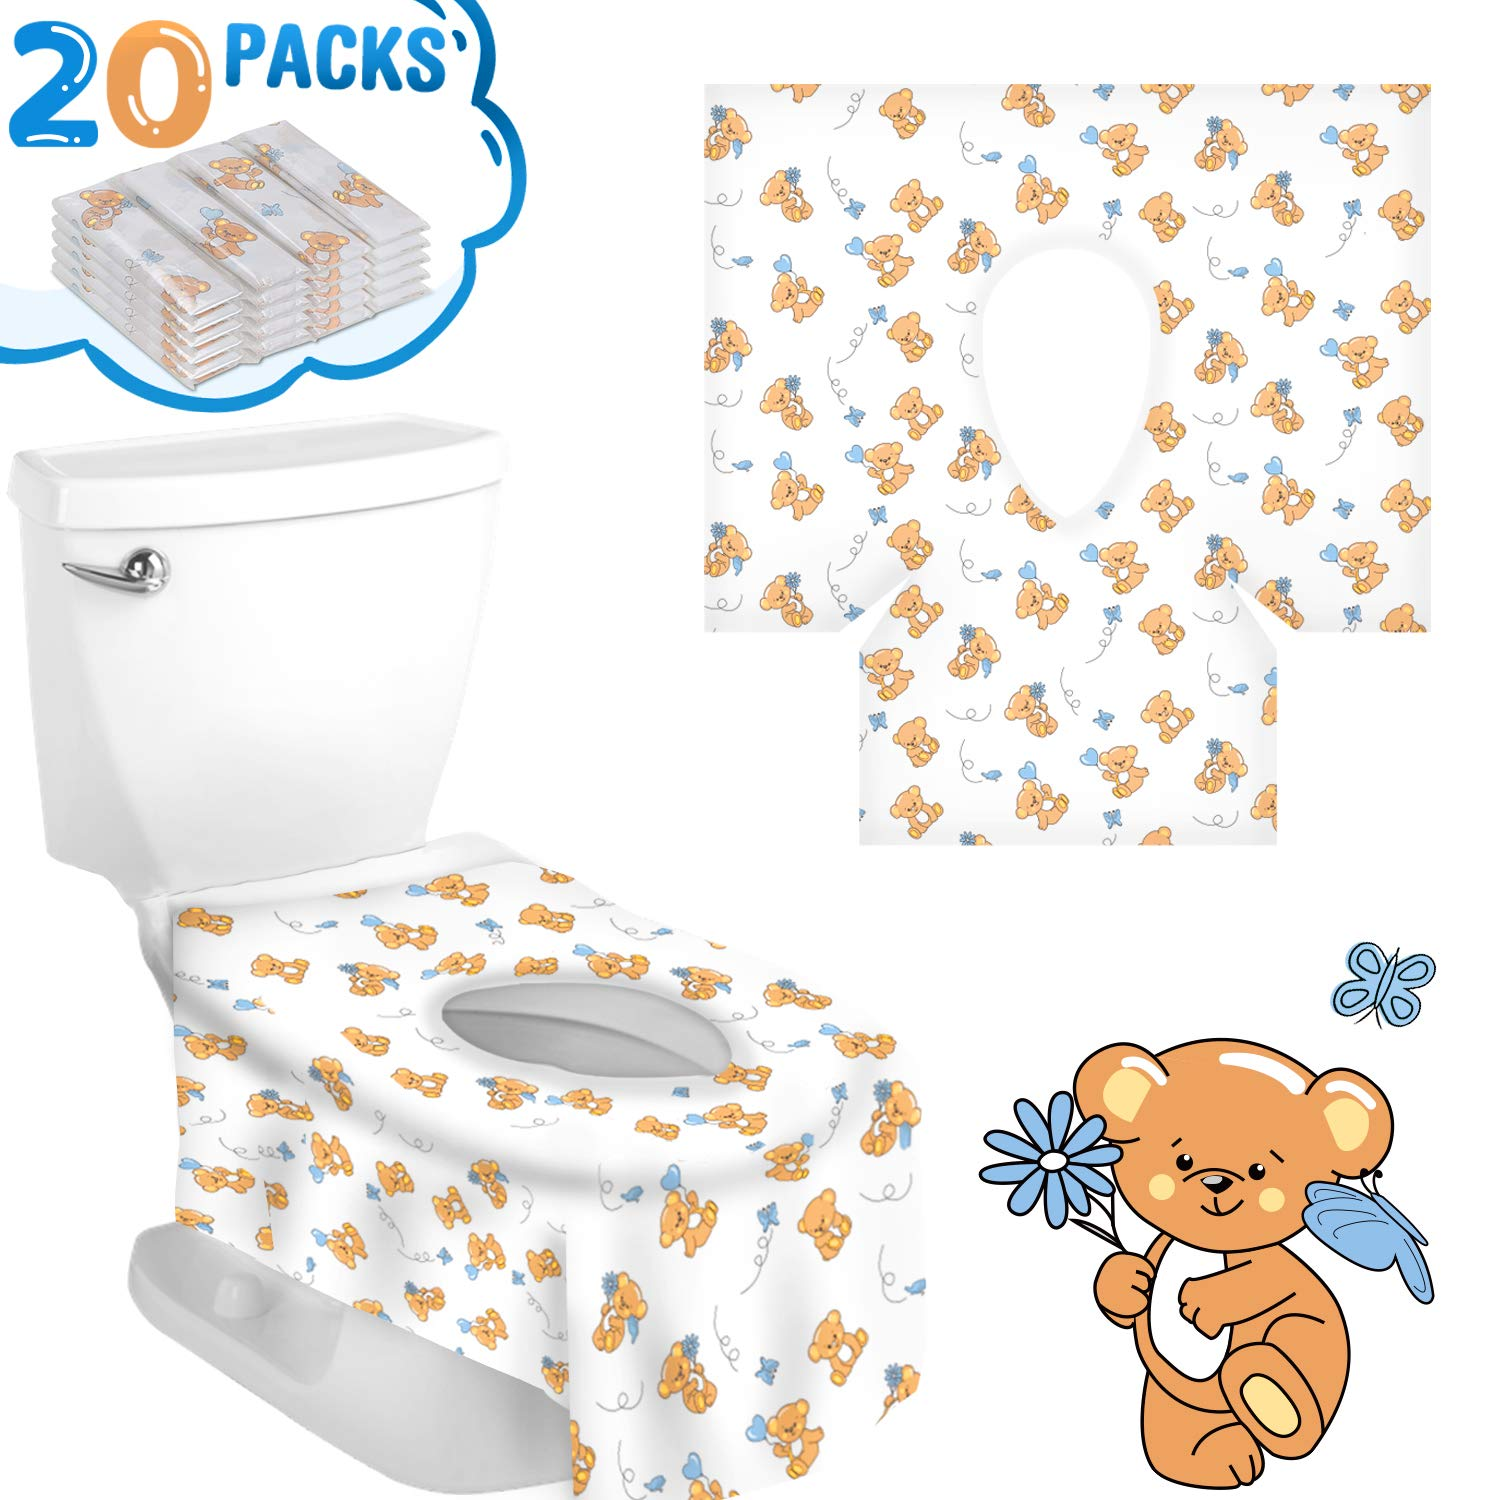 20 Packs Disposable Toilet Seat Covers, Full Coverage & Non-Slip Waterproof Travel Potty Seat Cover Individually Wrapped Potty Seat Covers for Travel Perfect for Adults & Kids (Cartoon Bear) 71JWWXVV3RL